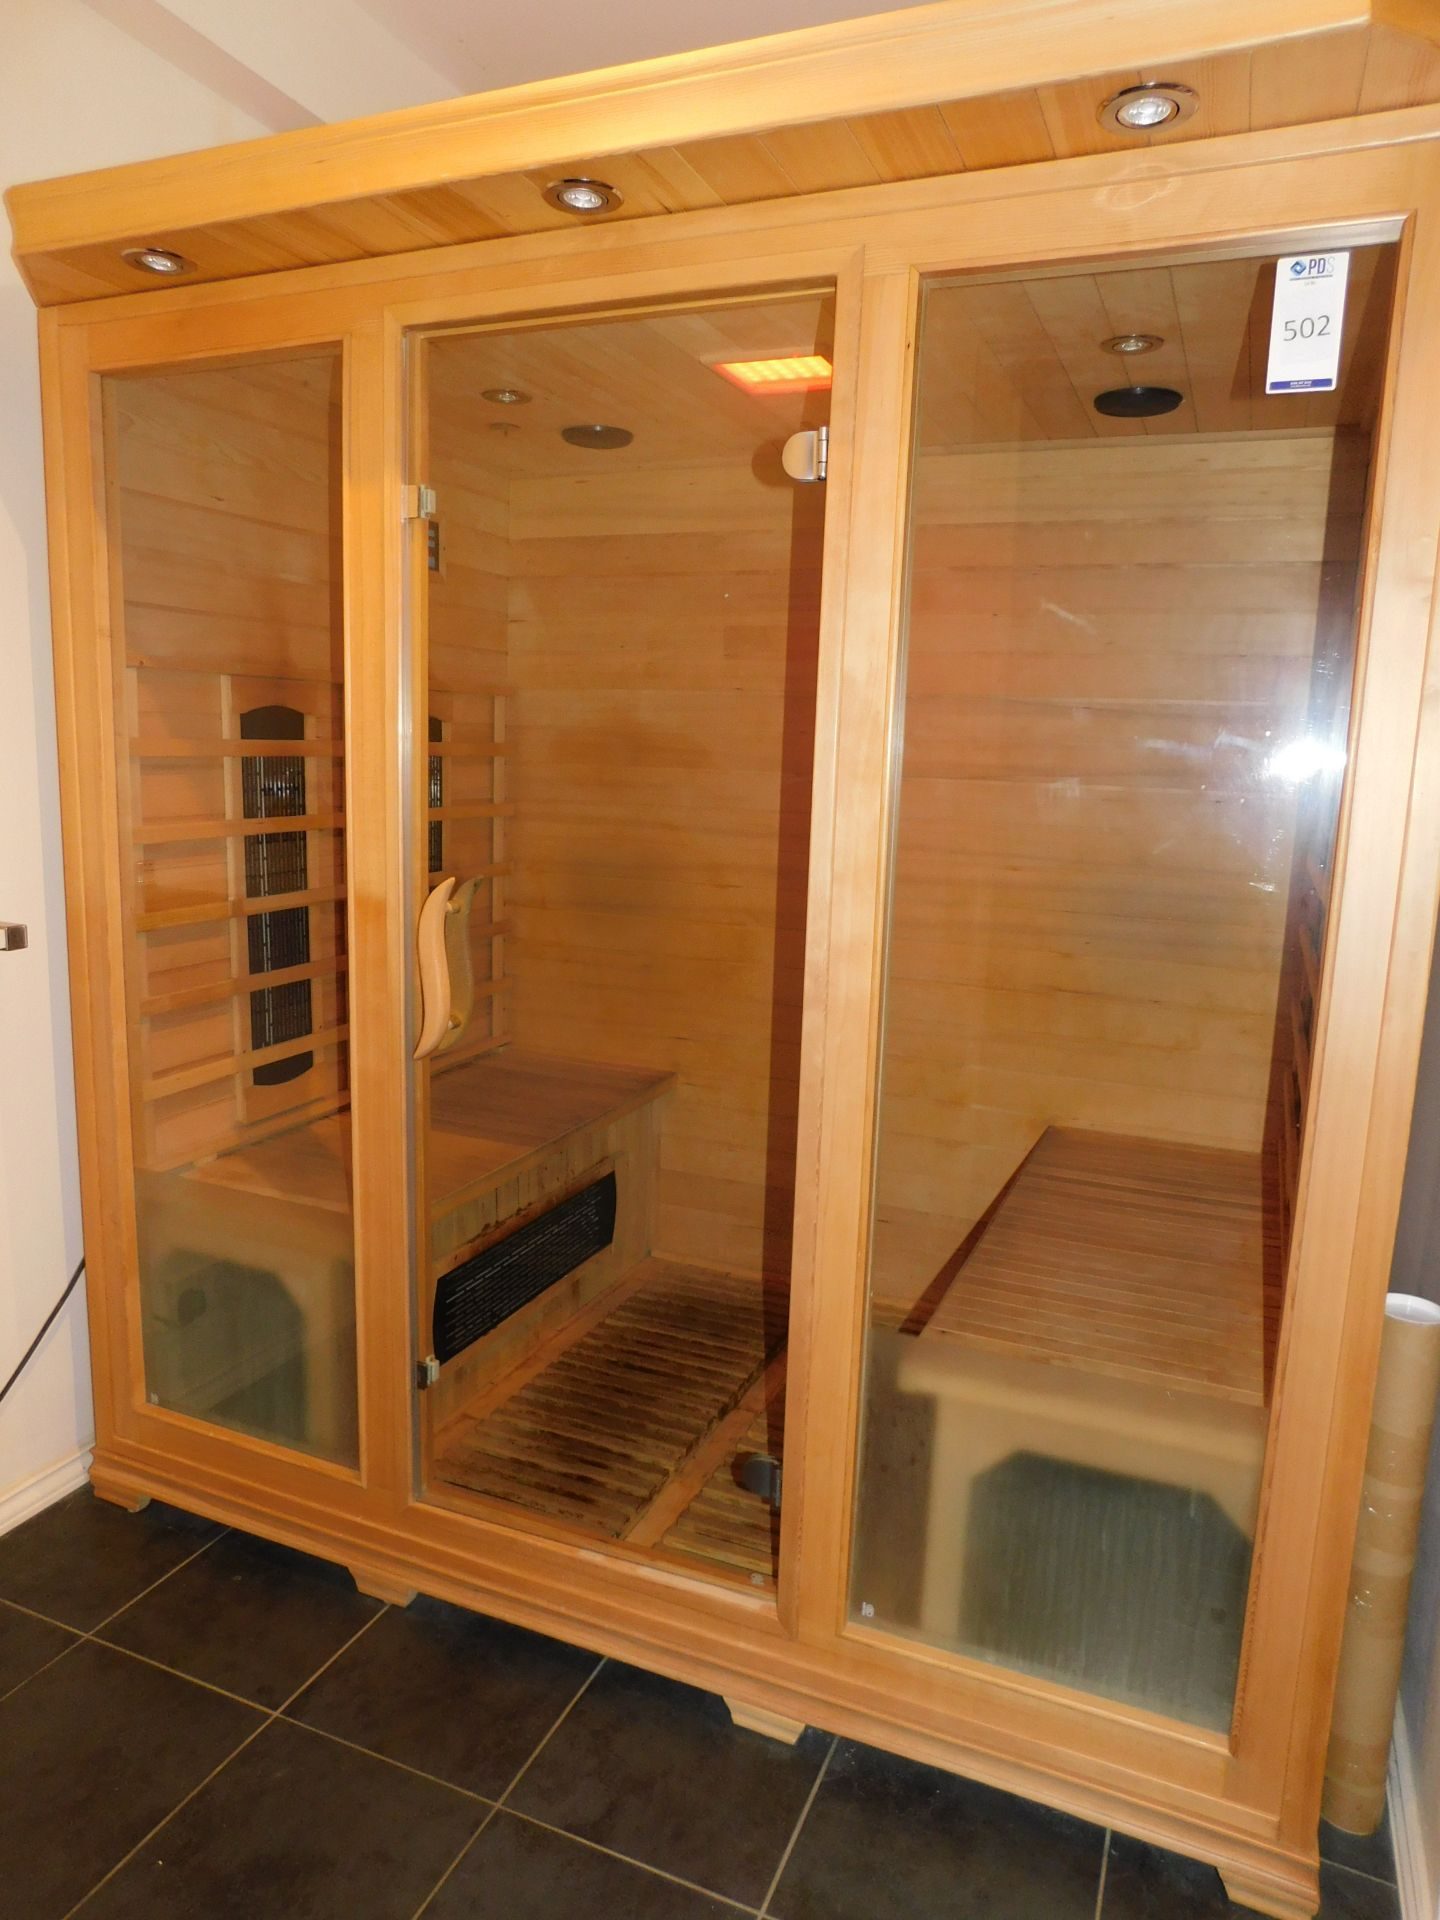 FAR Freestanding Infrared Sauna, W1.8m x H1.9m x D1.2m (Located Corby – See General Notes for - Image 4 of 7